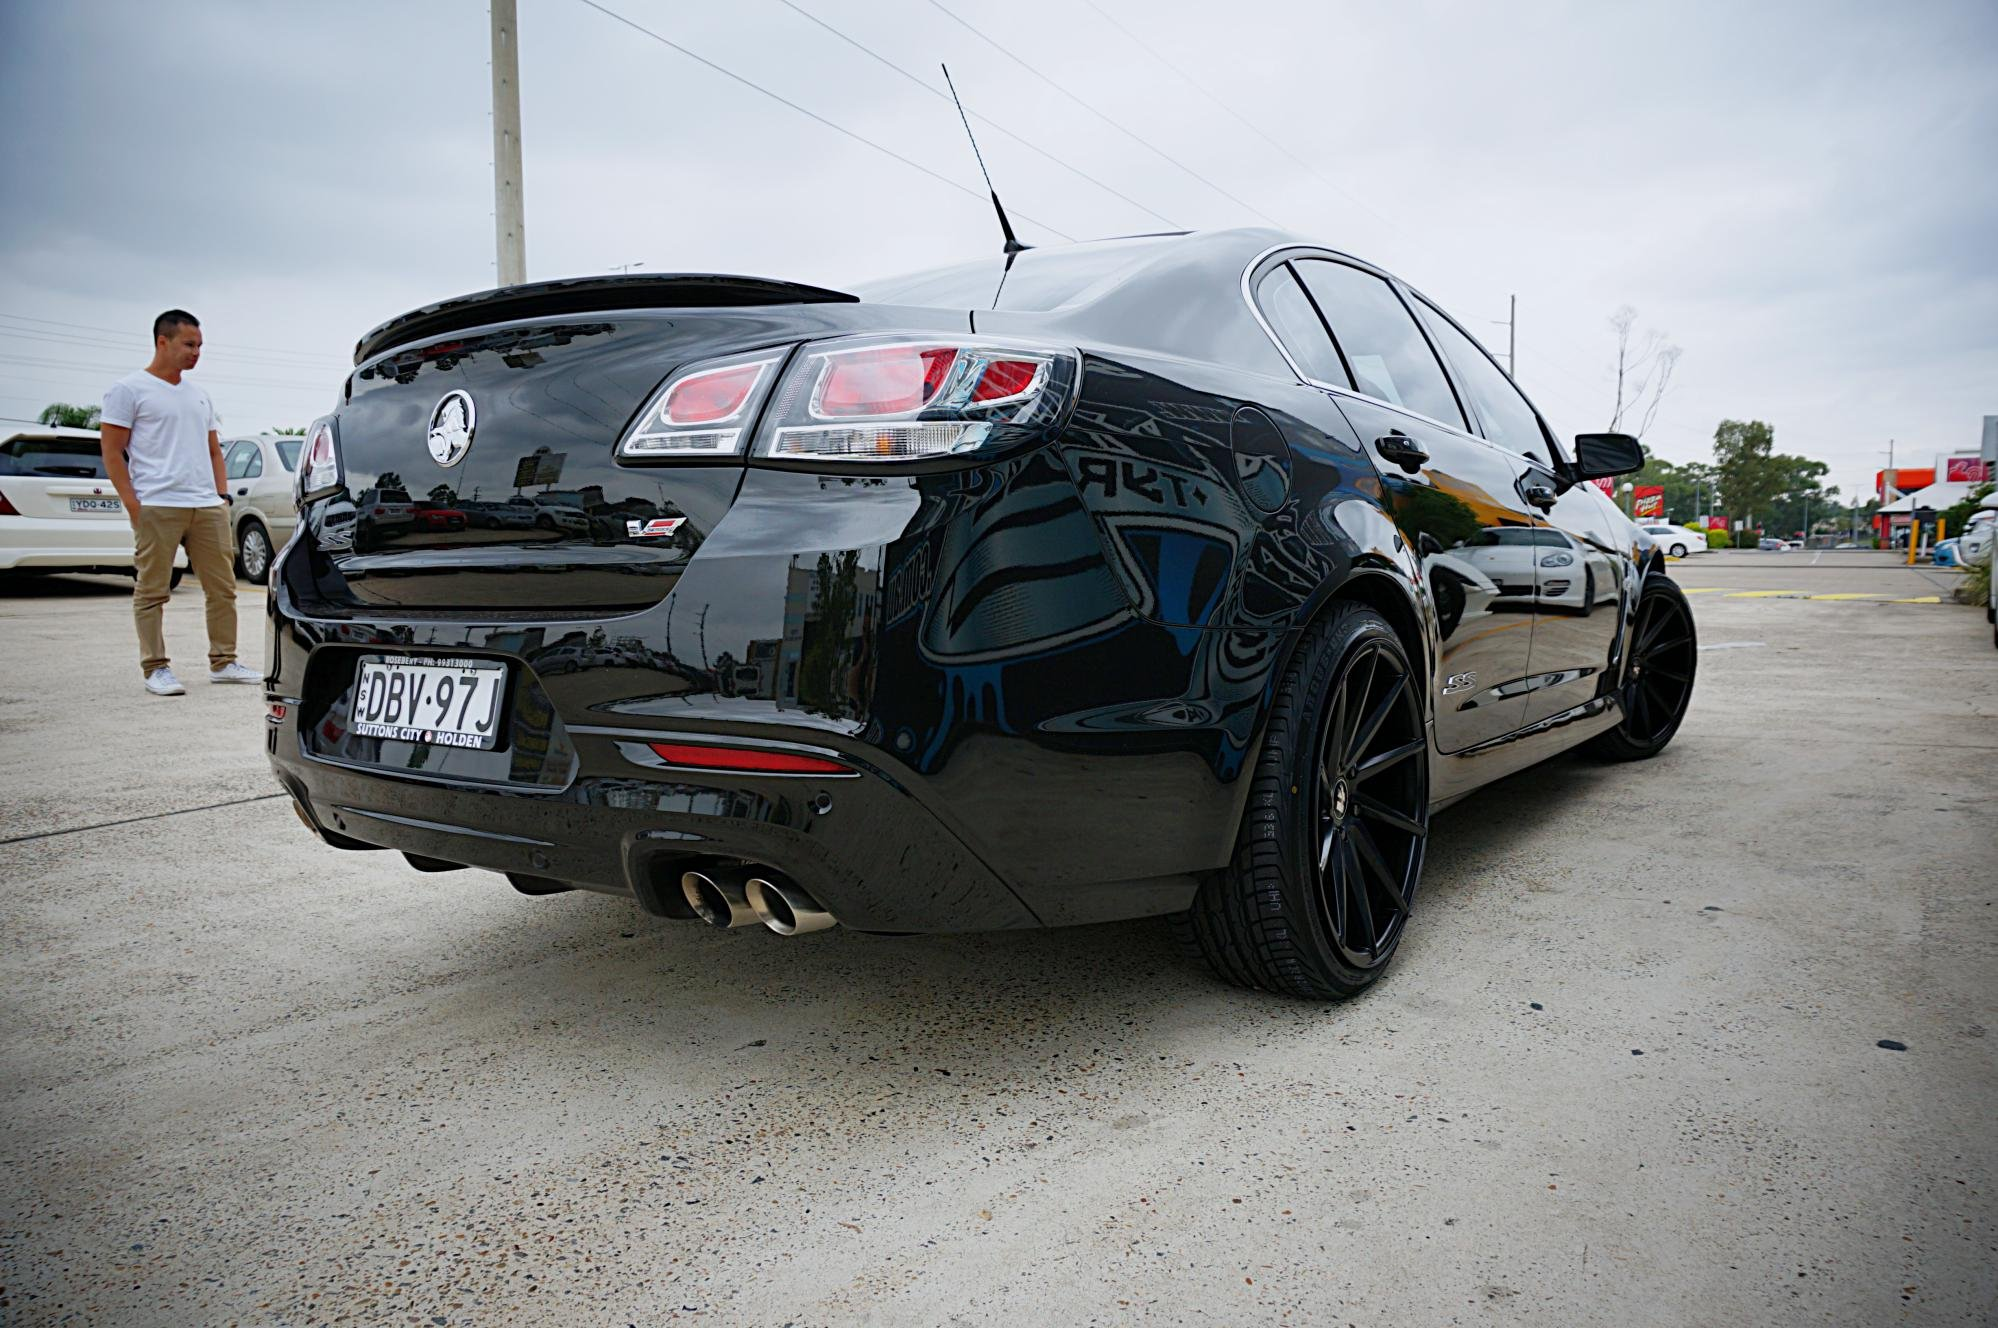 2016 Holden VF SS-V goes wide on Hussla Directional